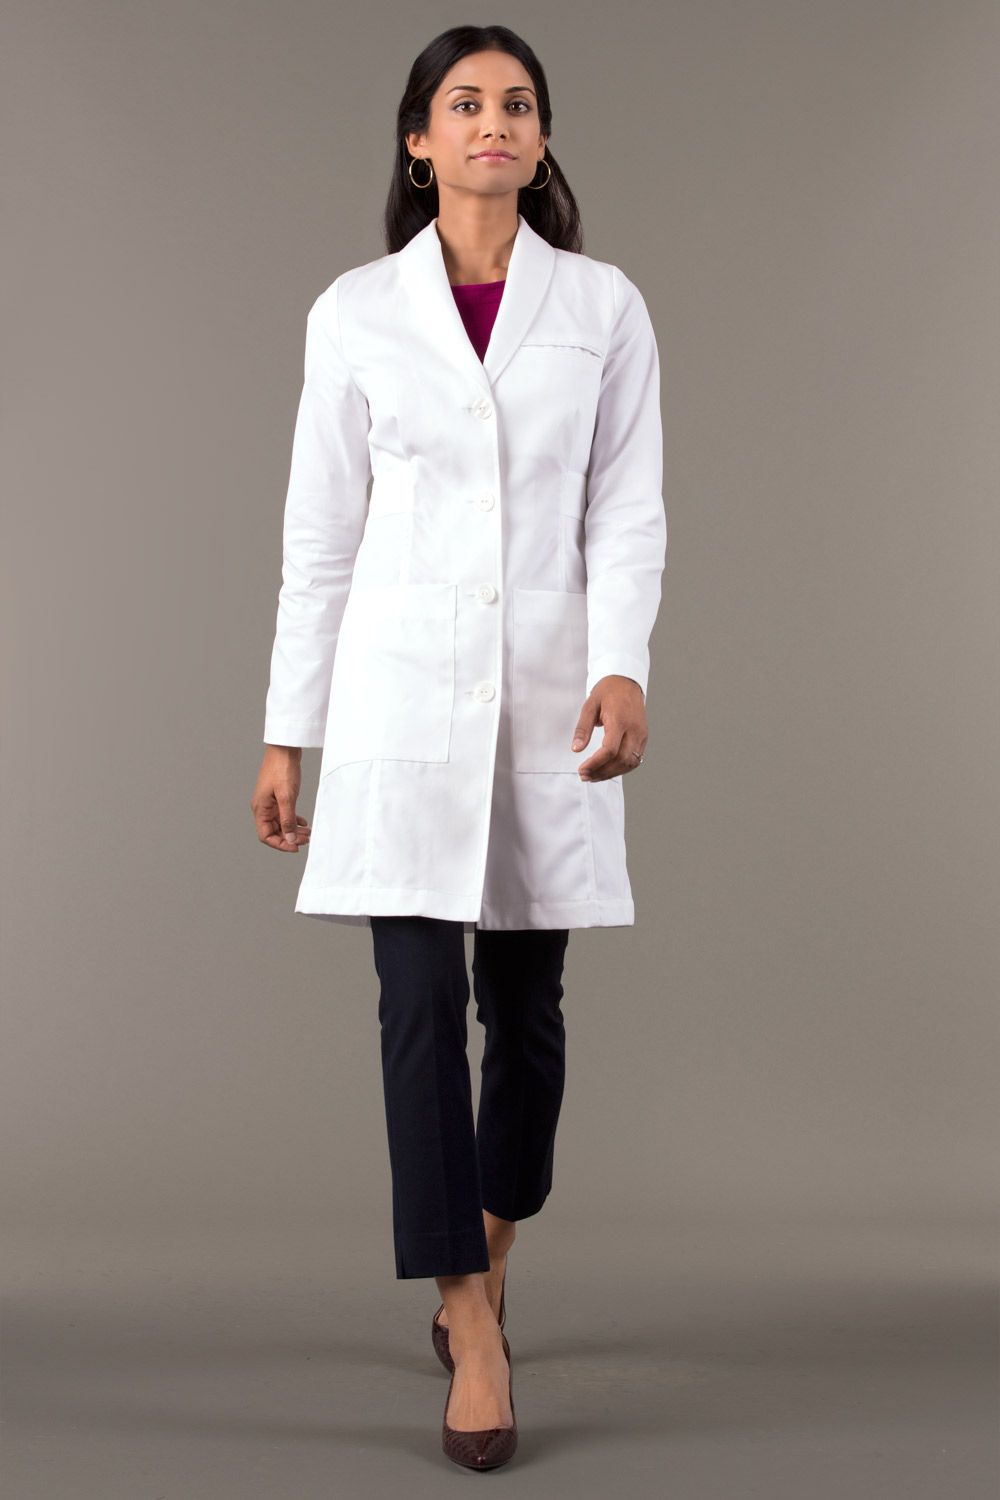 76b7cb17f84 M3 Emma W. Classic Fit Lab Coat | Nurse Practitioner work/clinical ...